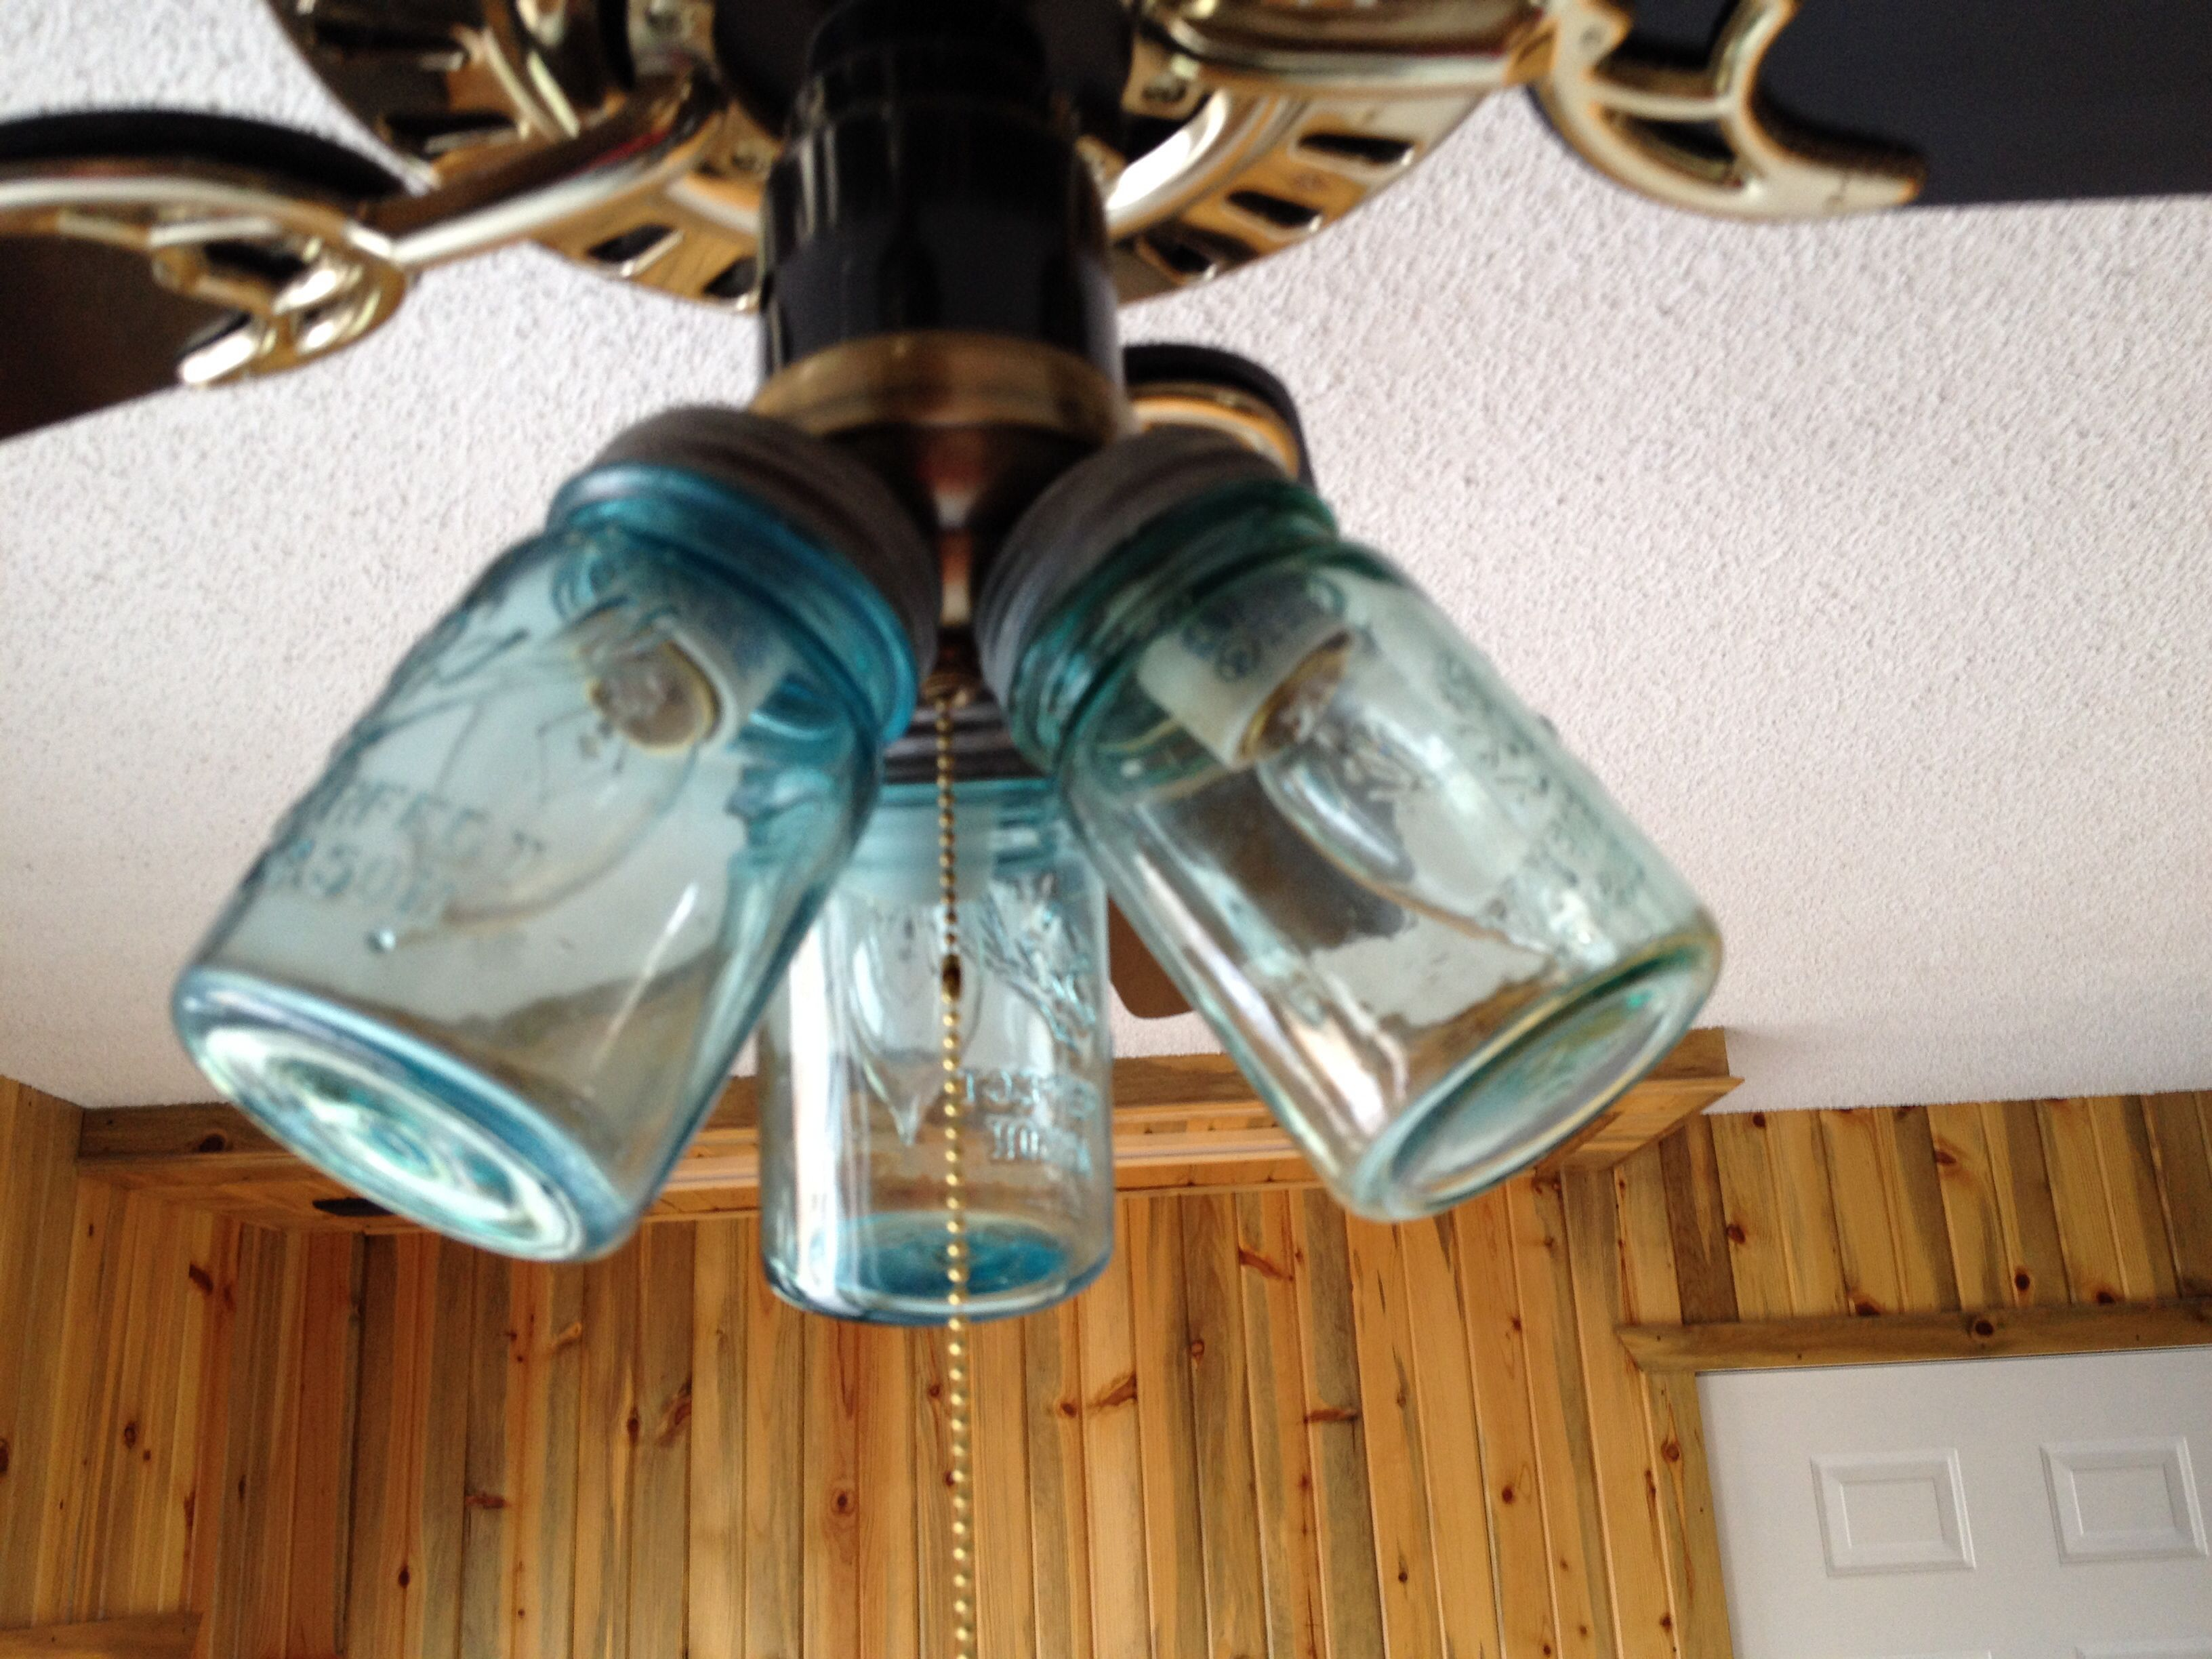 Ceiling Fan Covers Mason Jar Ceiling Fan Light Covers Home Sweet Home